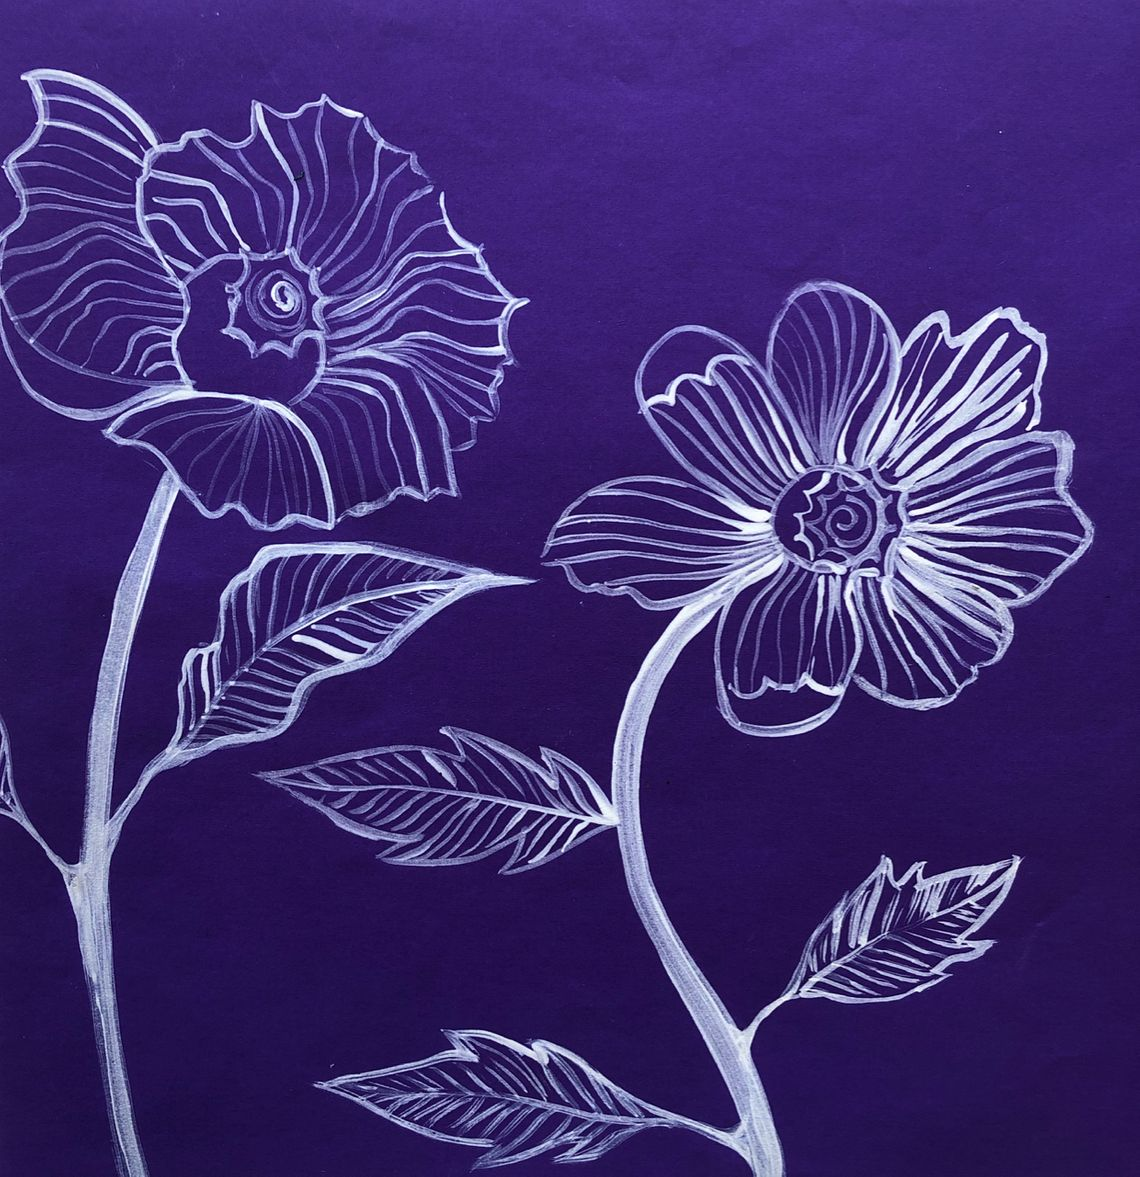 painted flowers art skills for kids adults families art activity wellbeing mindfulness art therapy